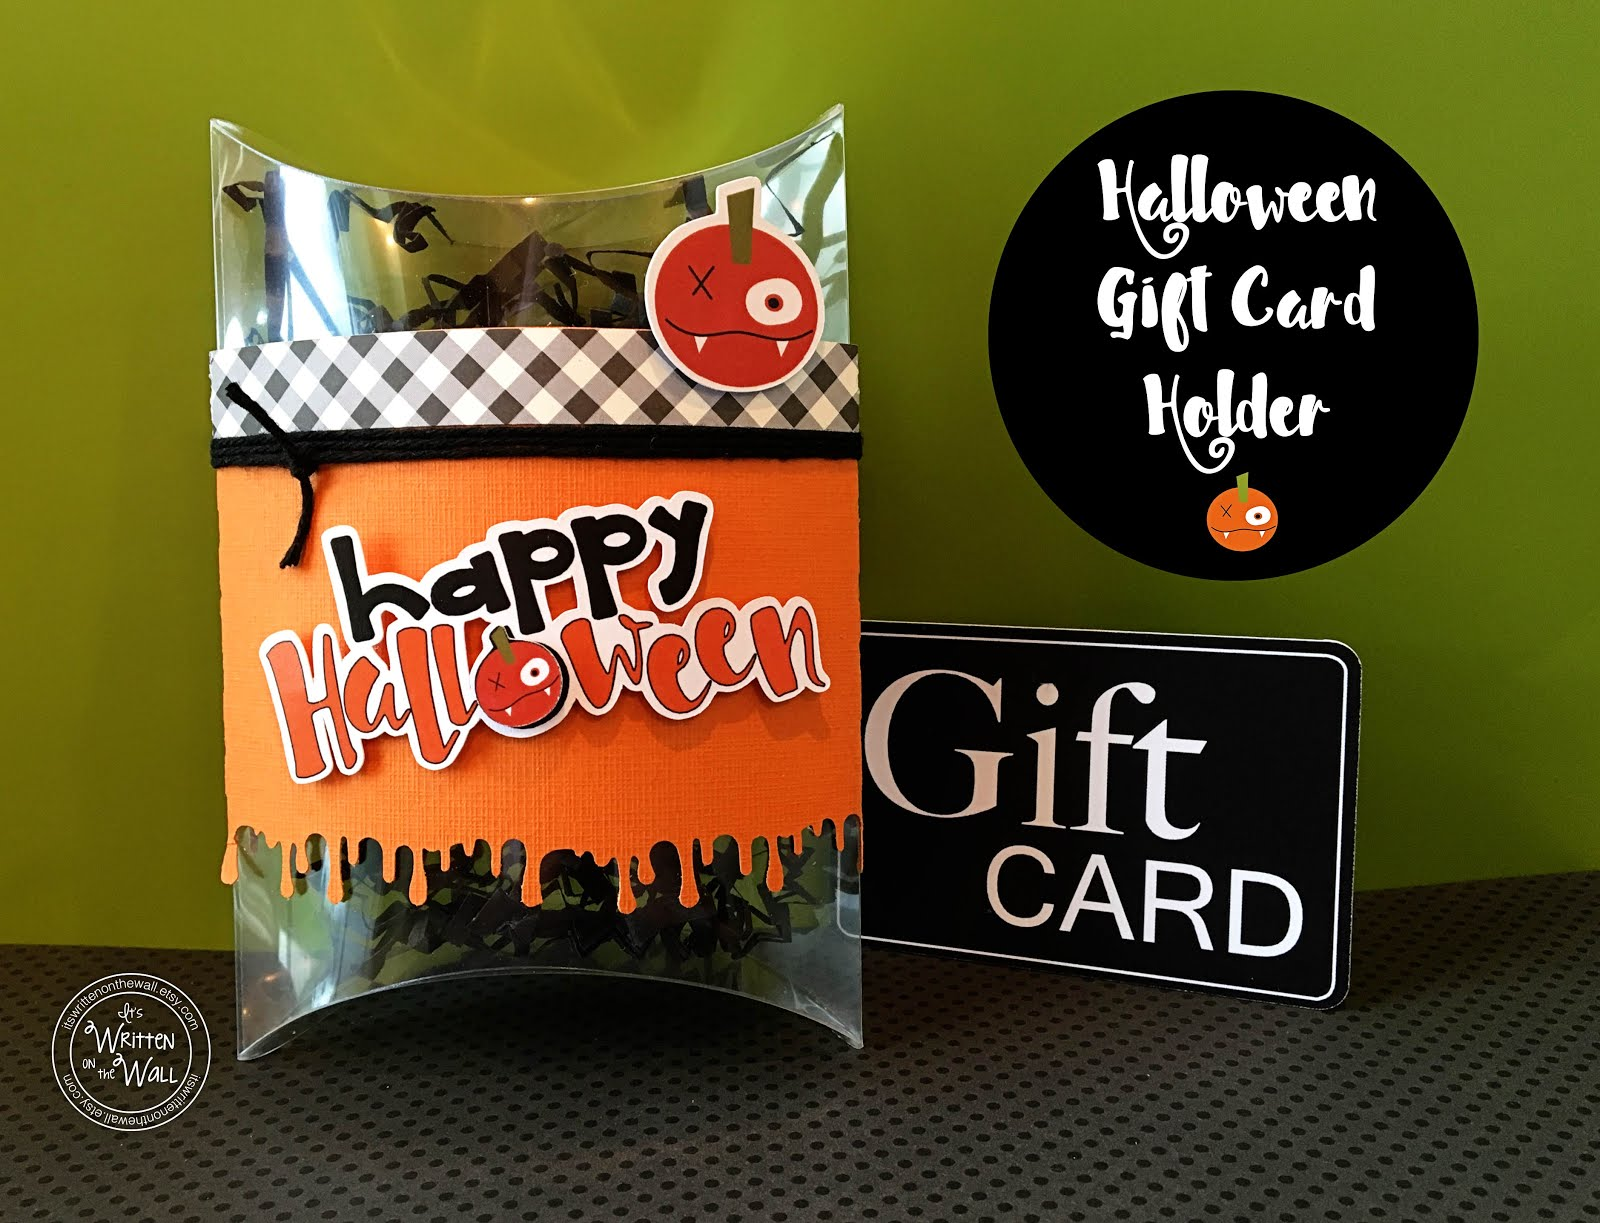 Halloween Gift Card Holder for Everyone!